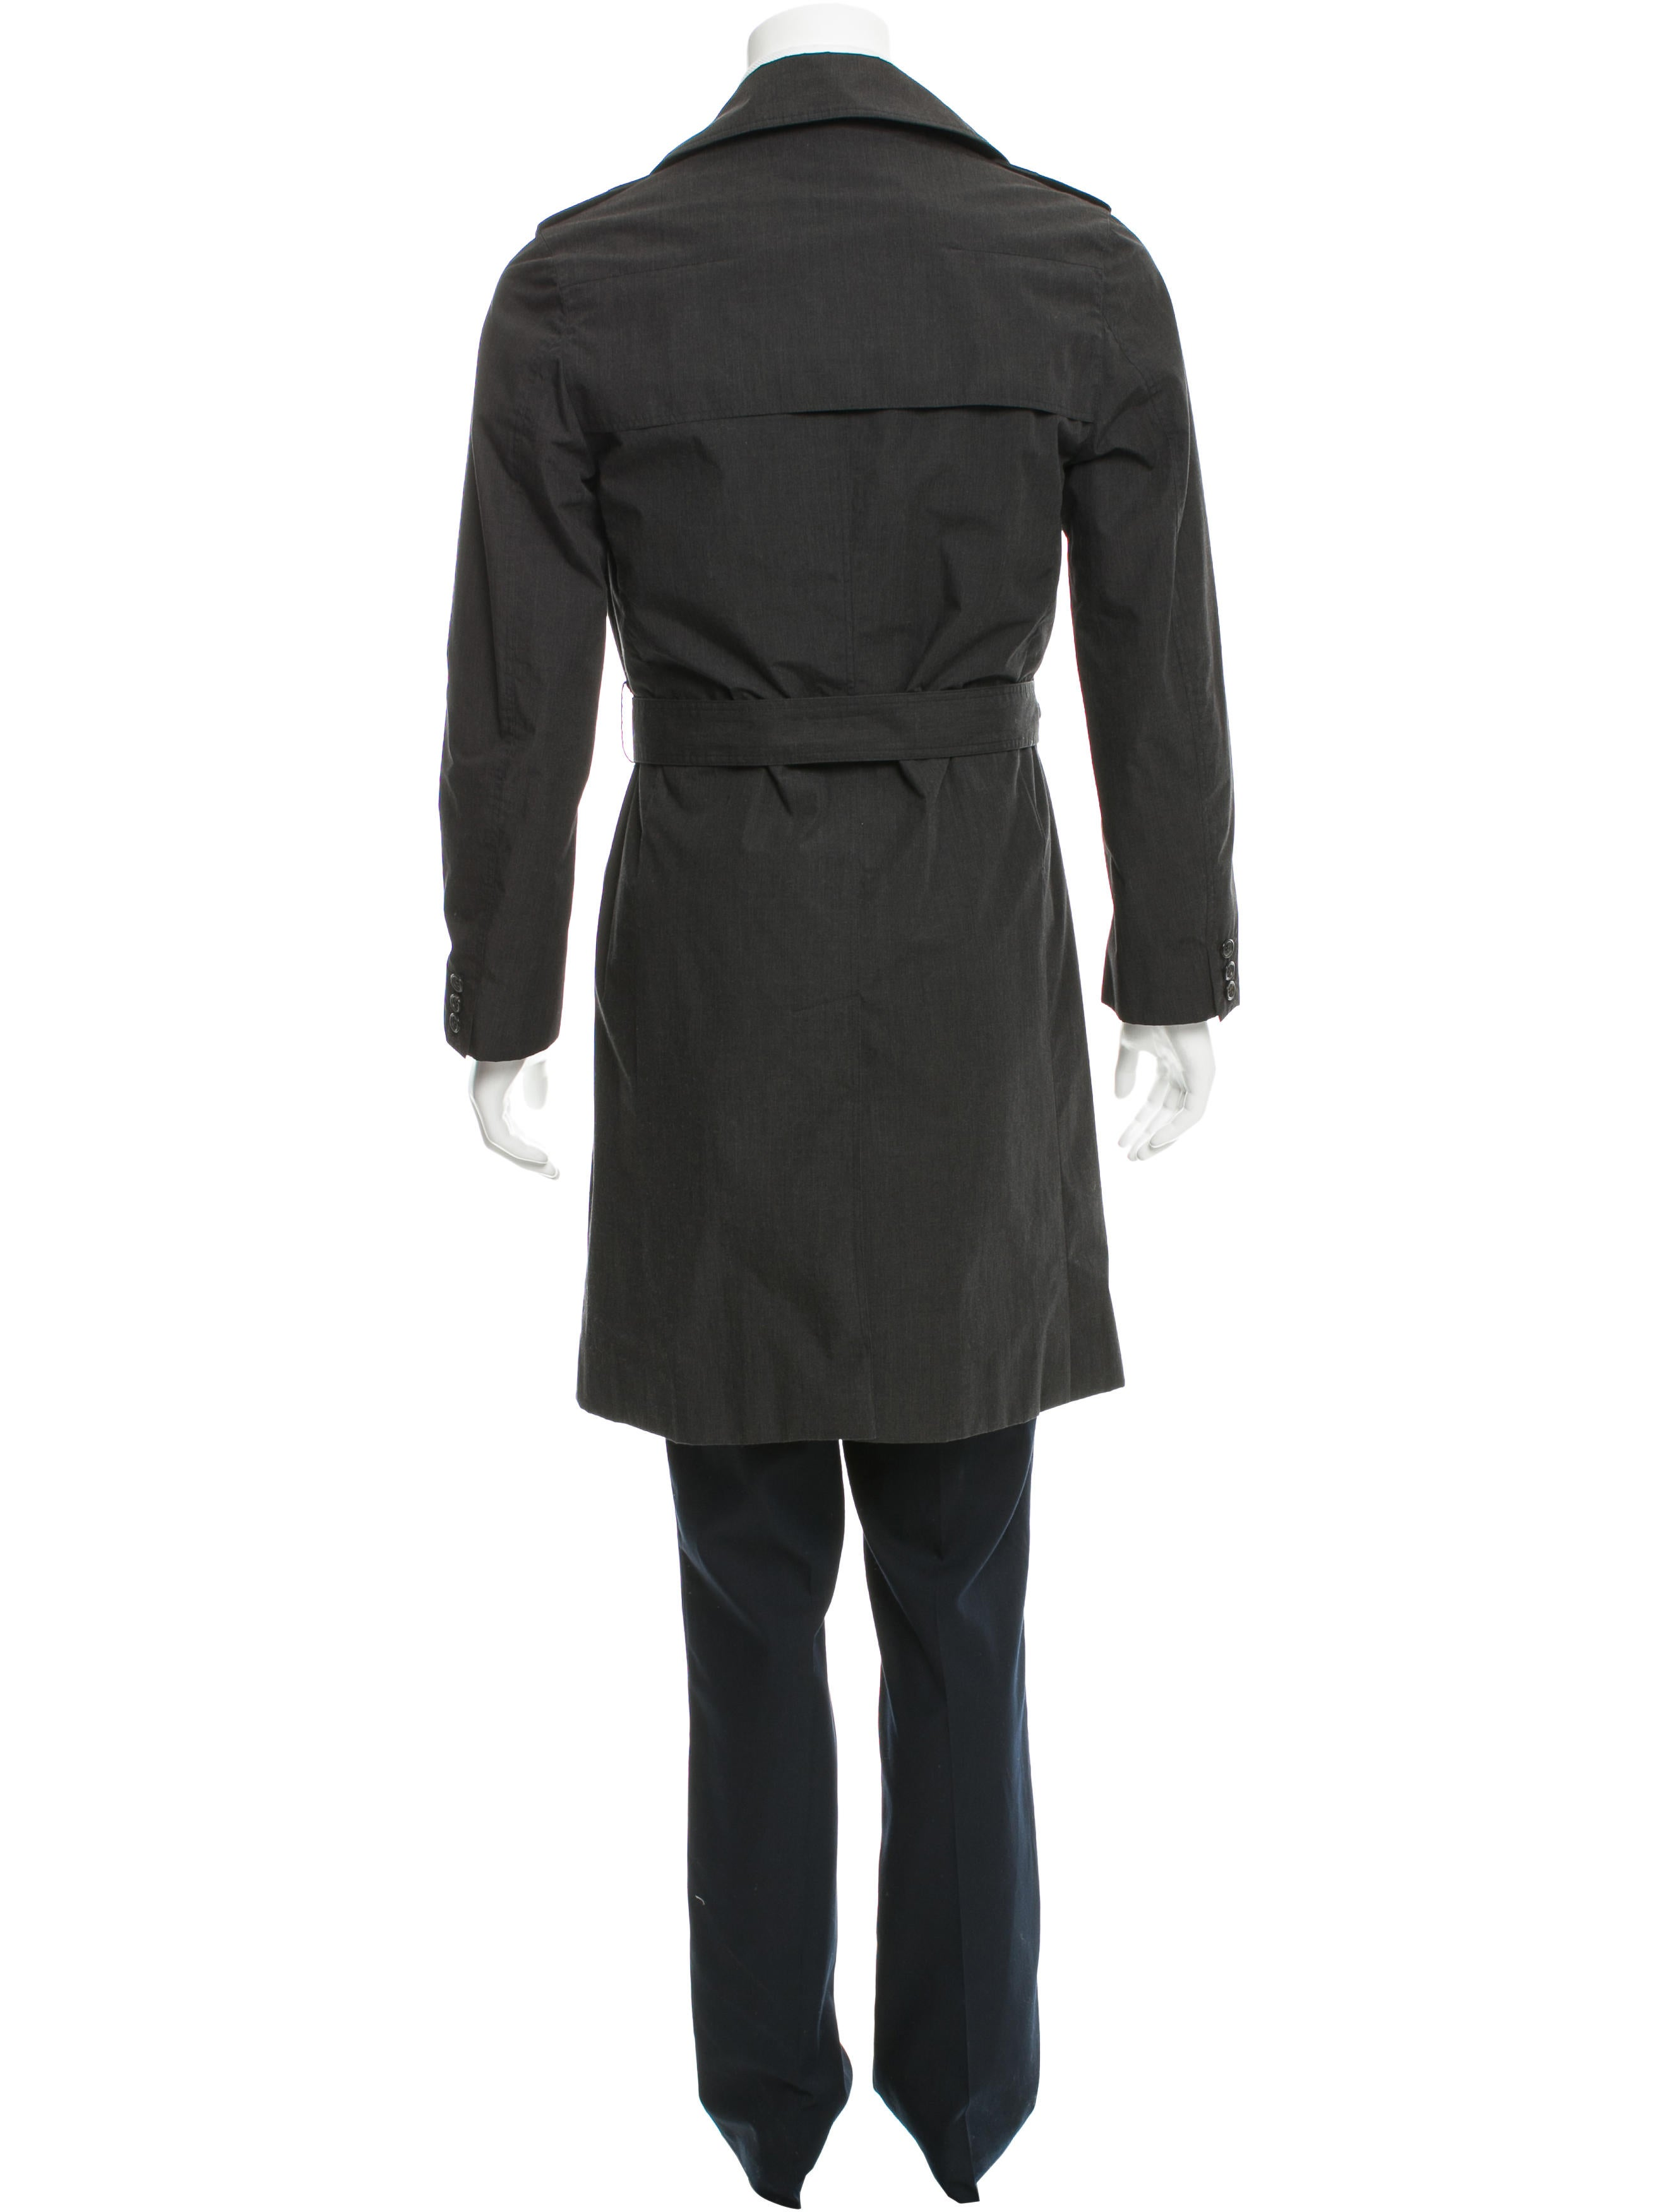 dior homme double breasted belted trench coat clothing hmm22802 the realreal. Black Bedroom Furniture Sets. Home Design Ideas